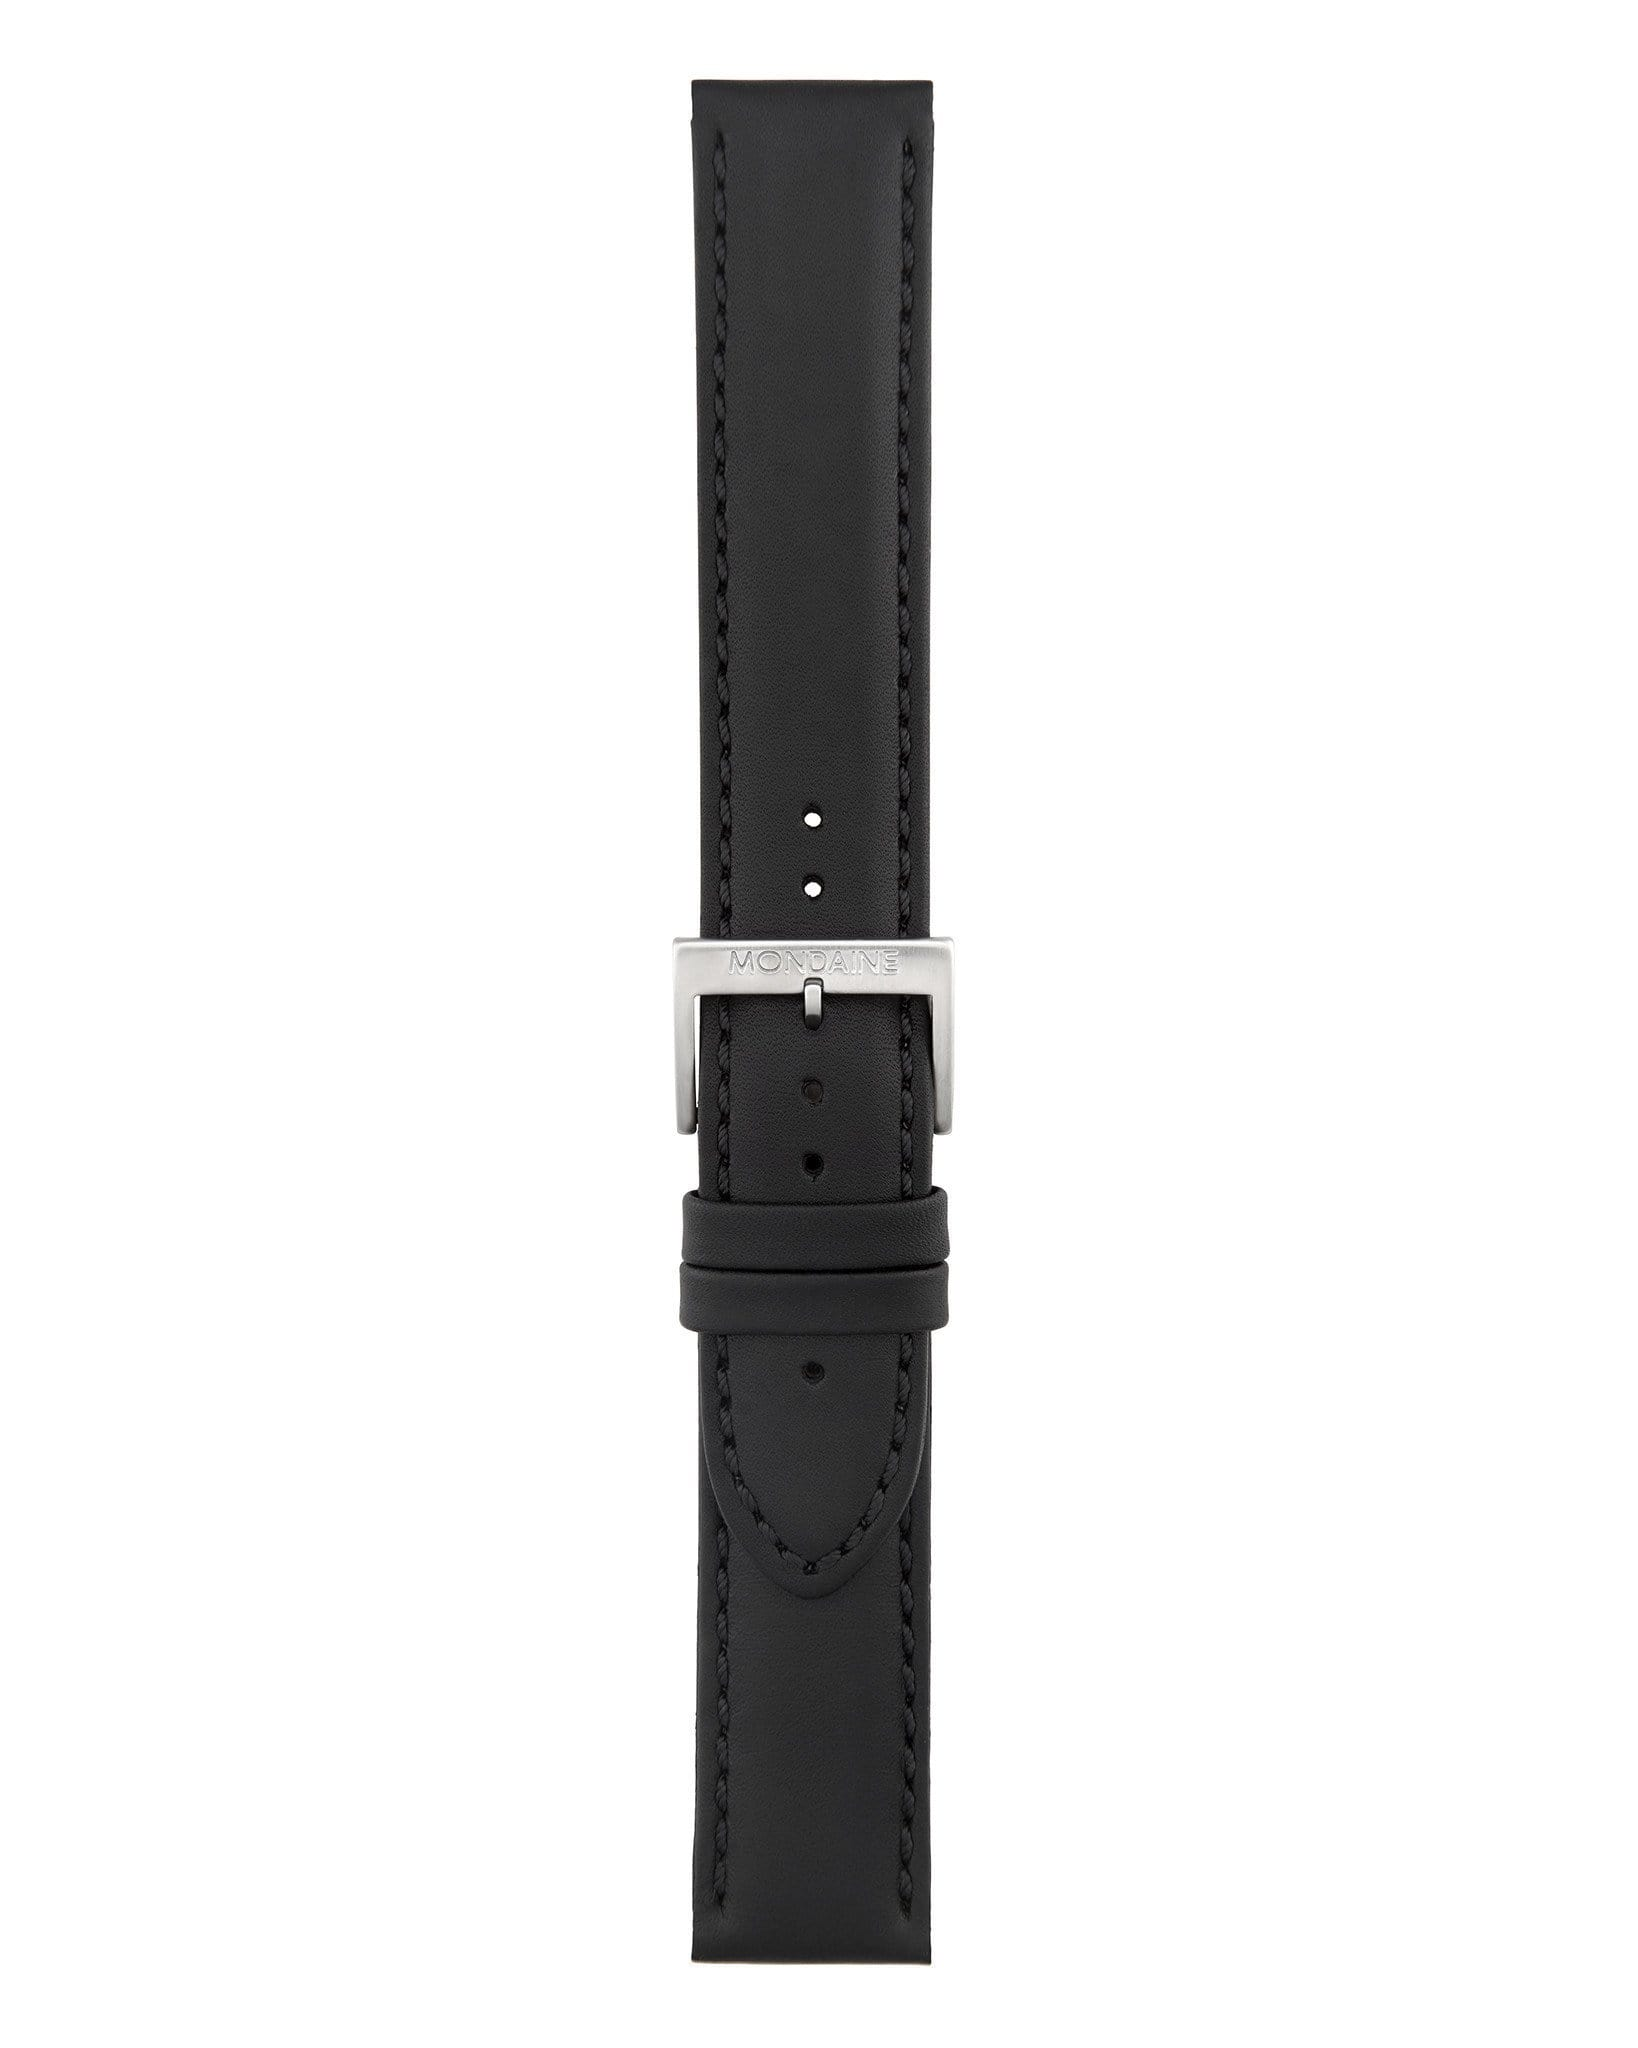 Helvetica No1 Bold Black Leather Strap